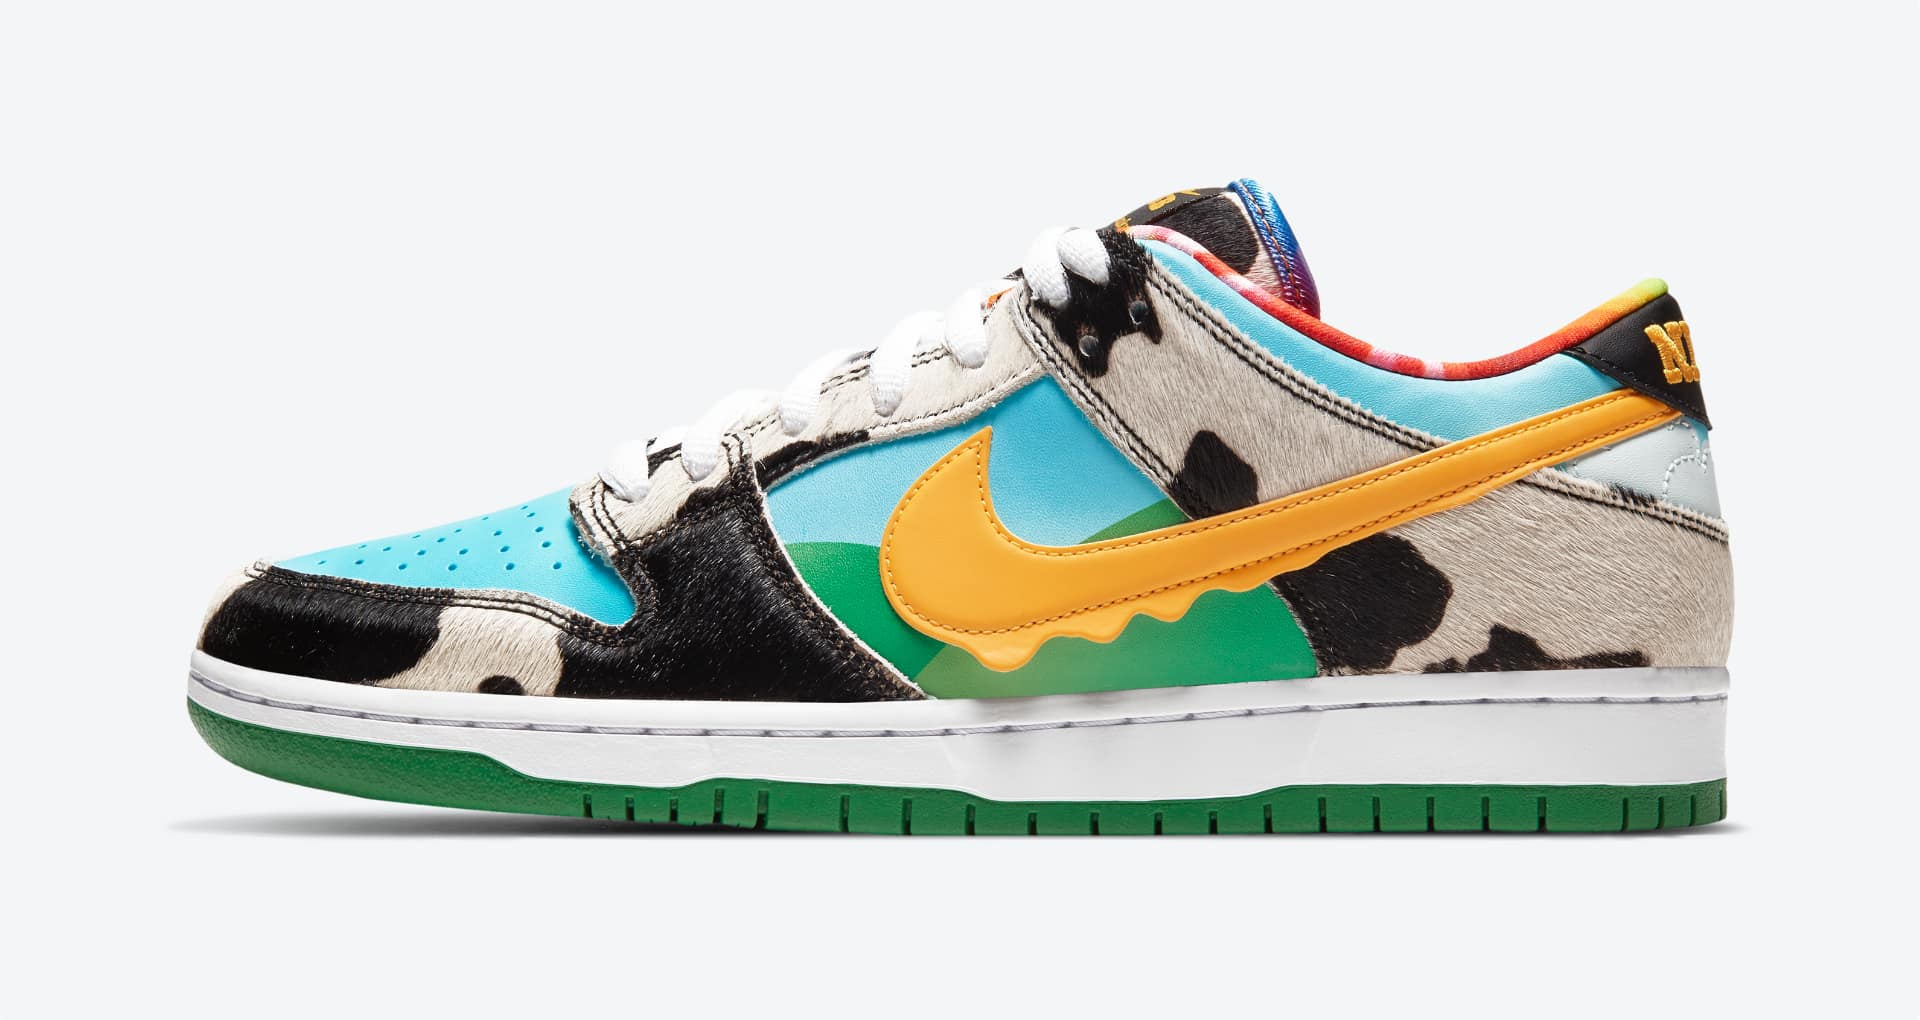 Chunky Dunky Colorful Sneakers by Nike SB and Ben & Jerry's